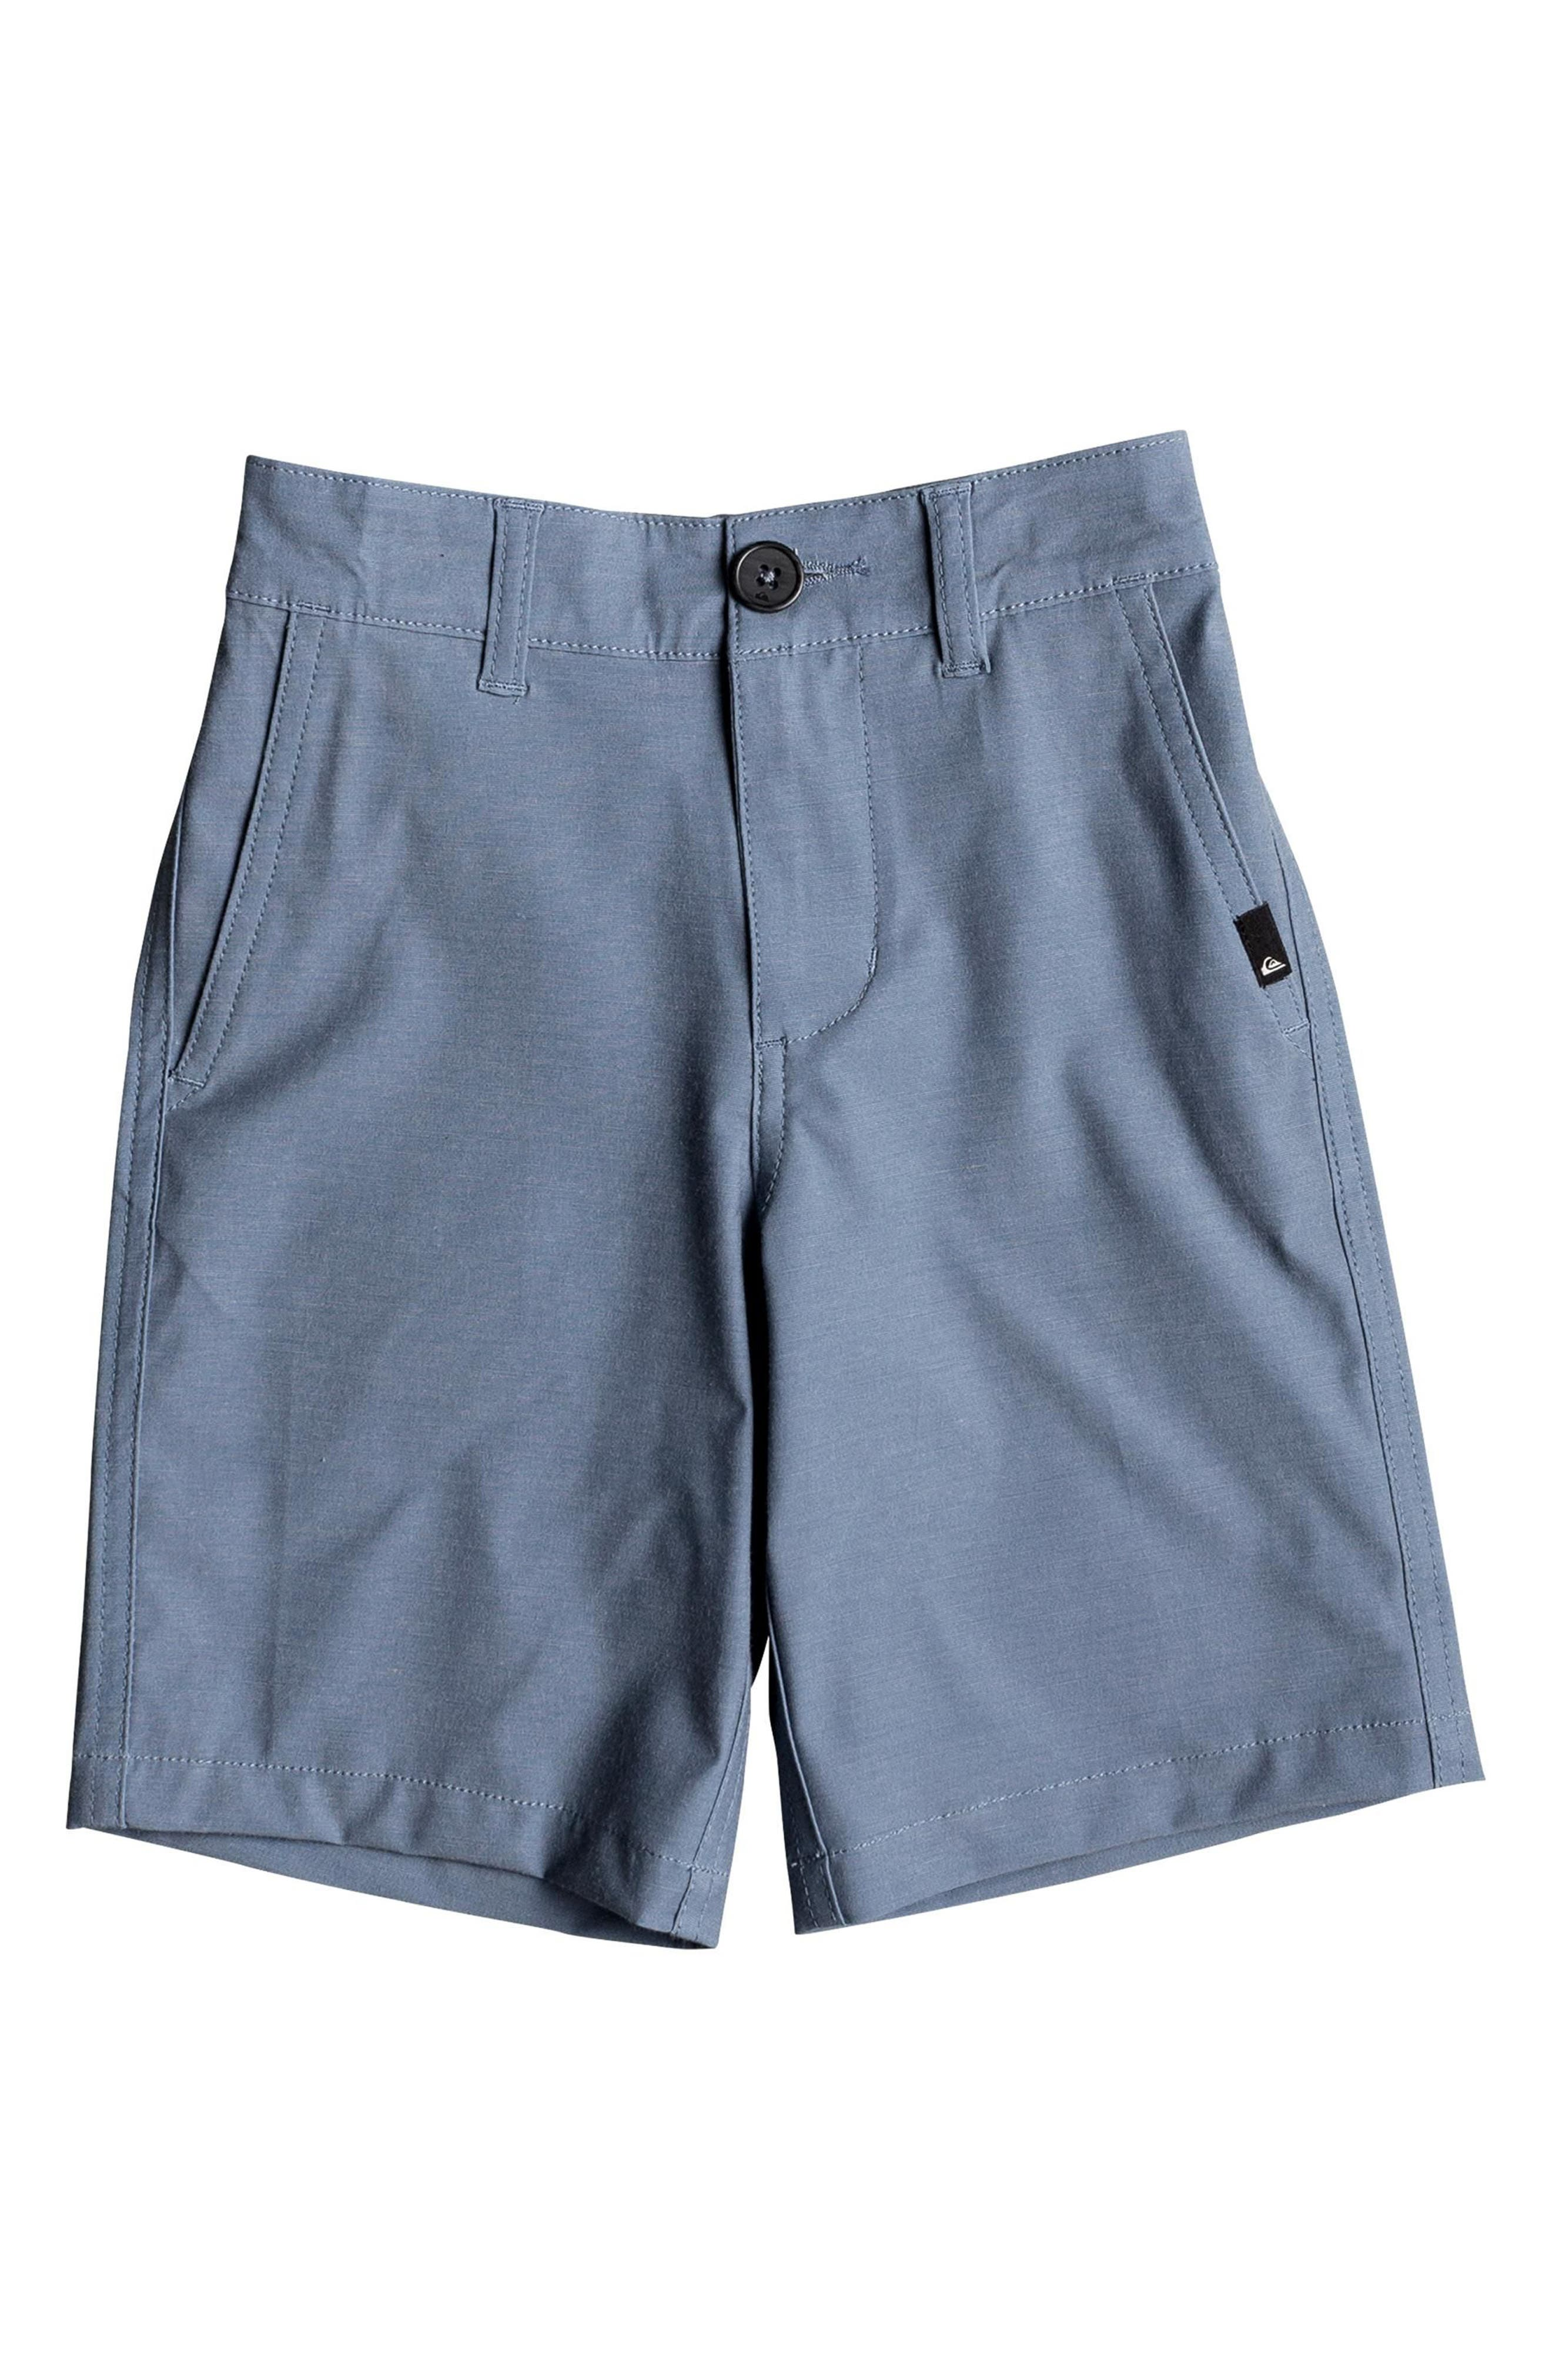 Union Heather Amphibian Shorts,                         Main,                         color, Real Teal